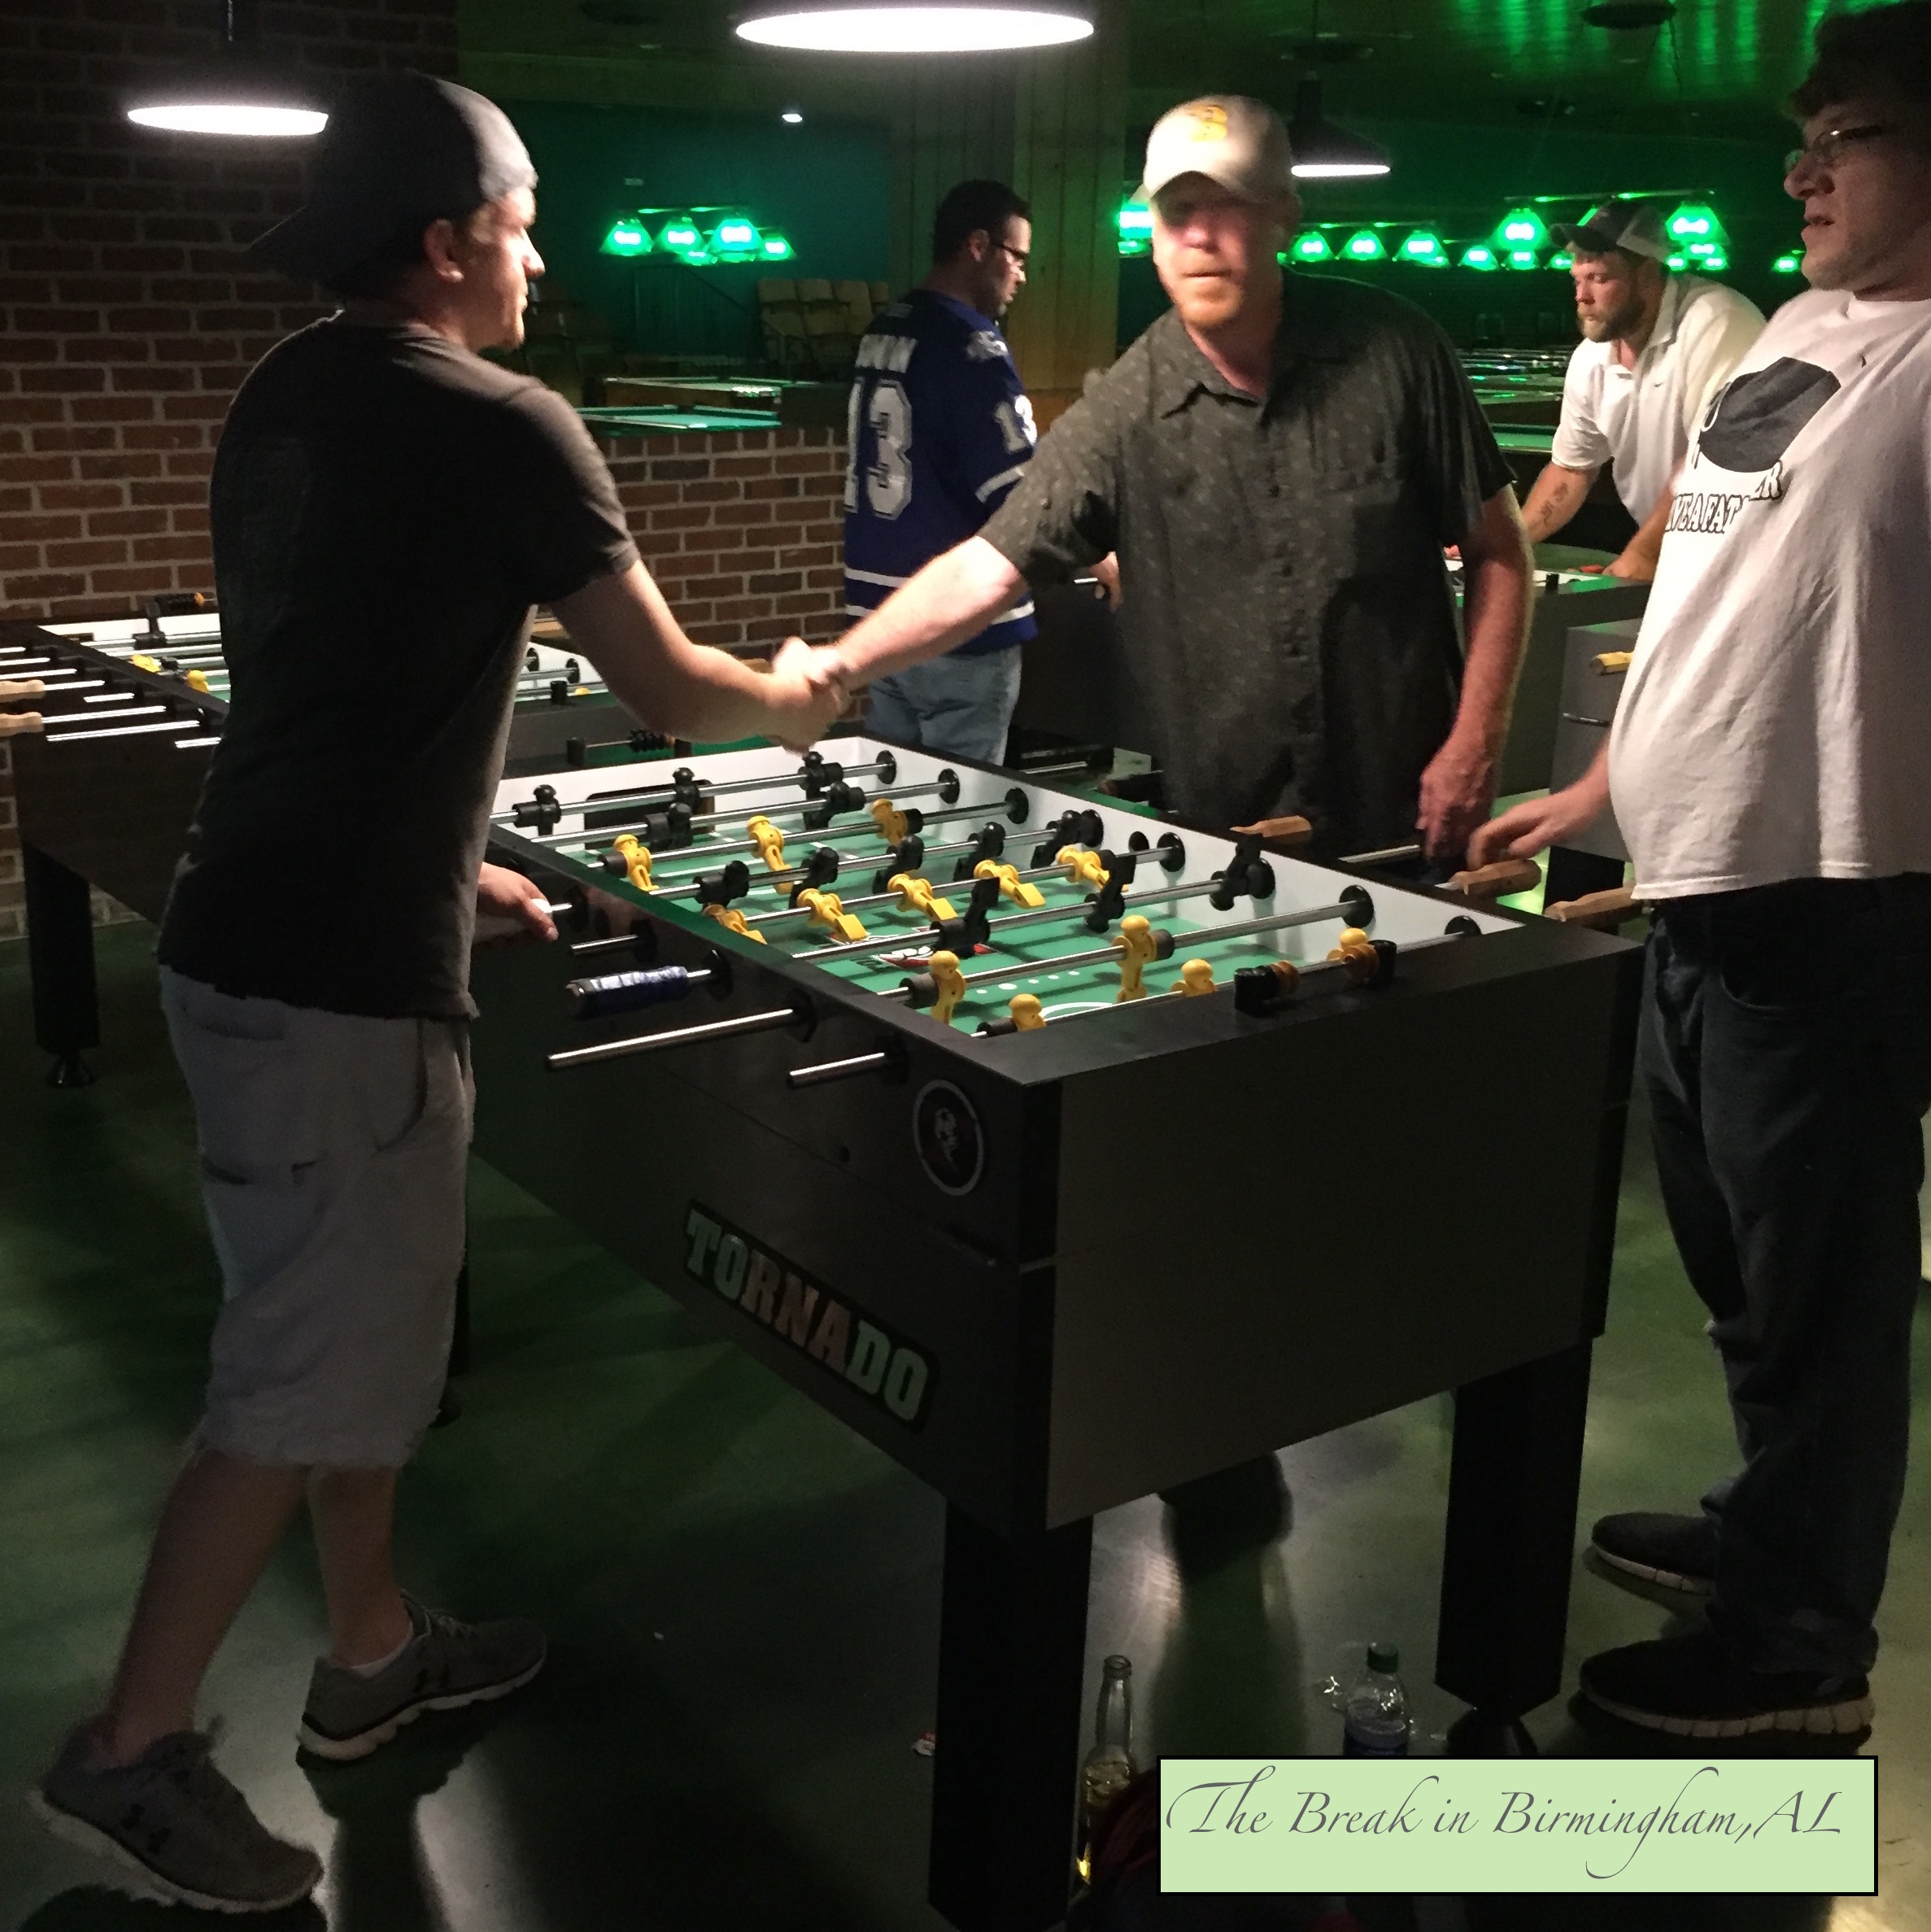 Foosball players competing at The Break in Birmingham 2018.